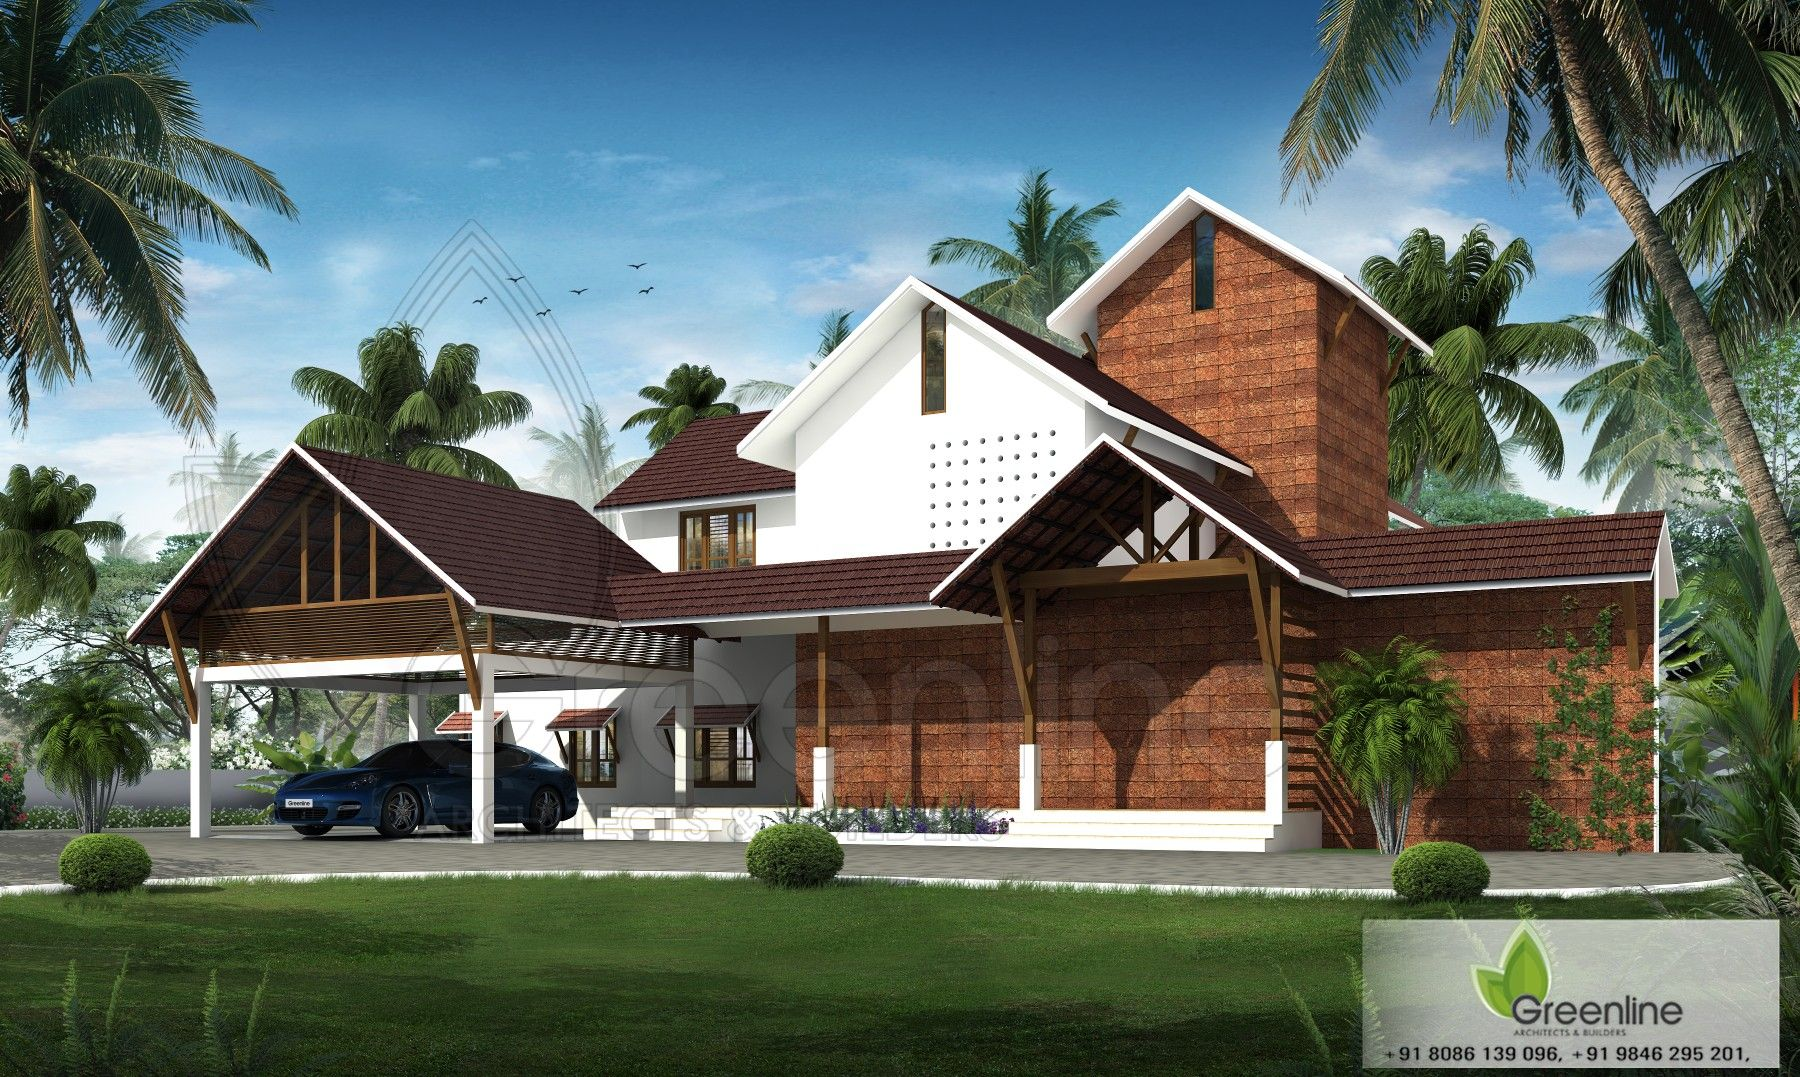 Kerala Traditional House Design Kerala House Design Kerala Traditional House Village House Design